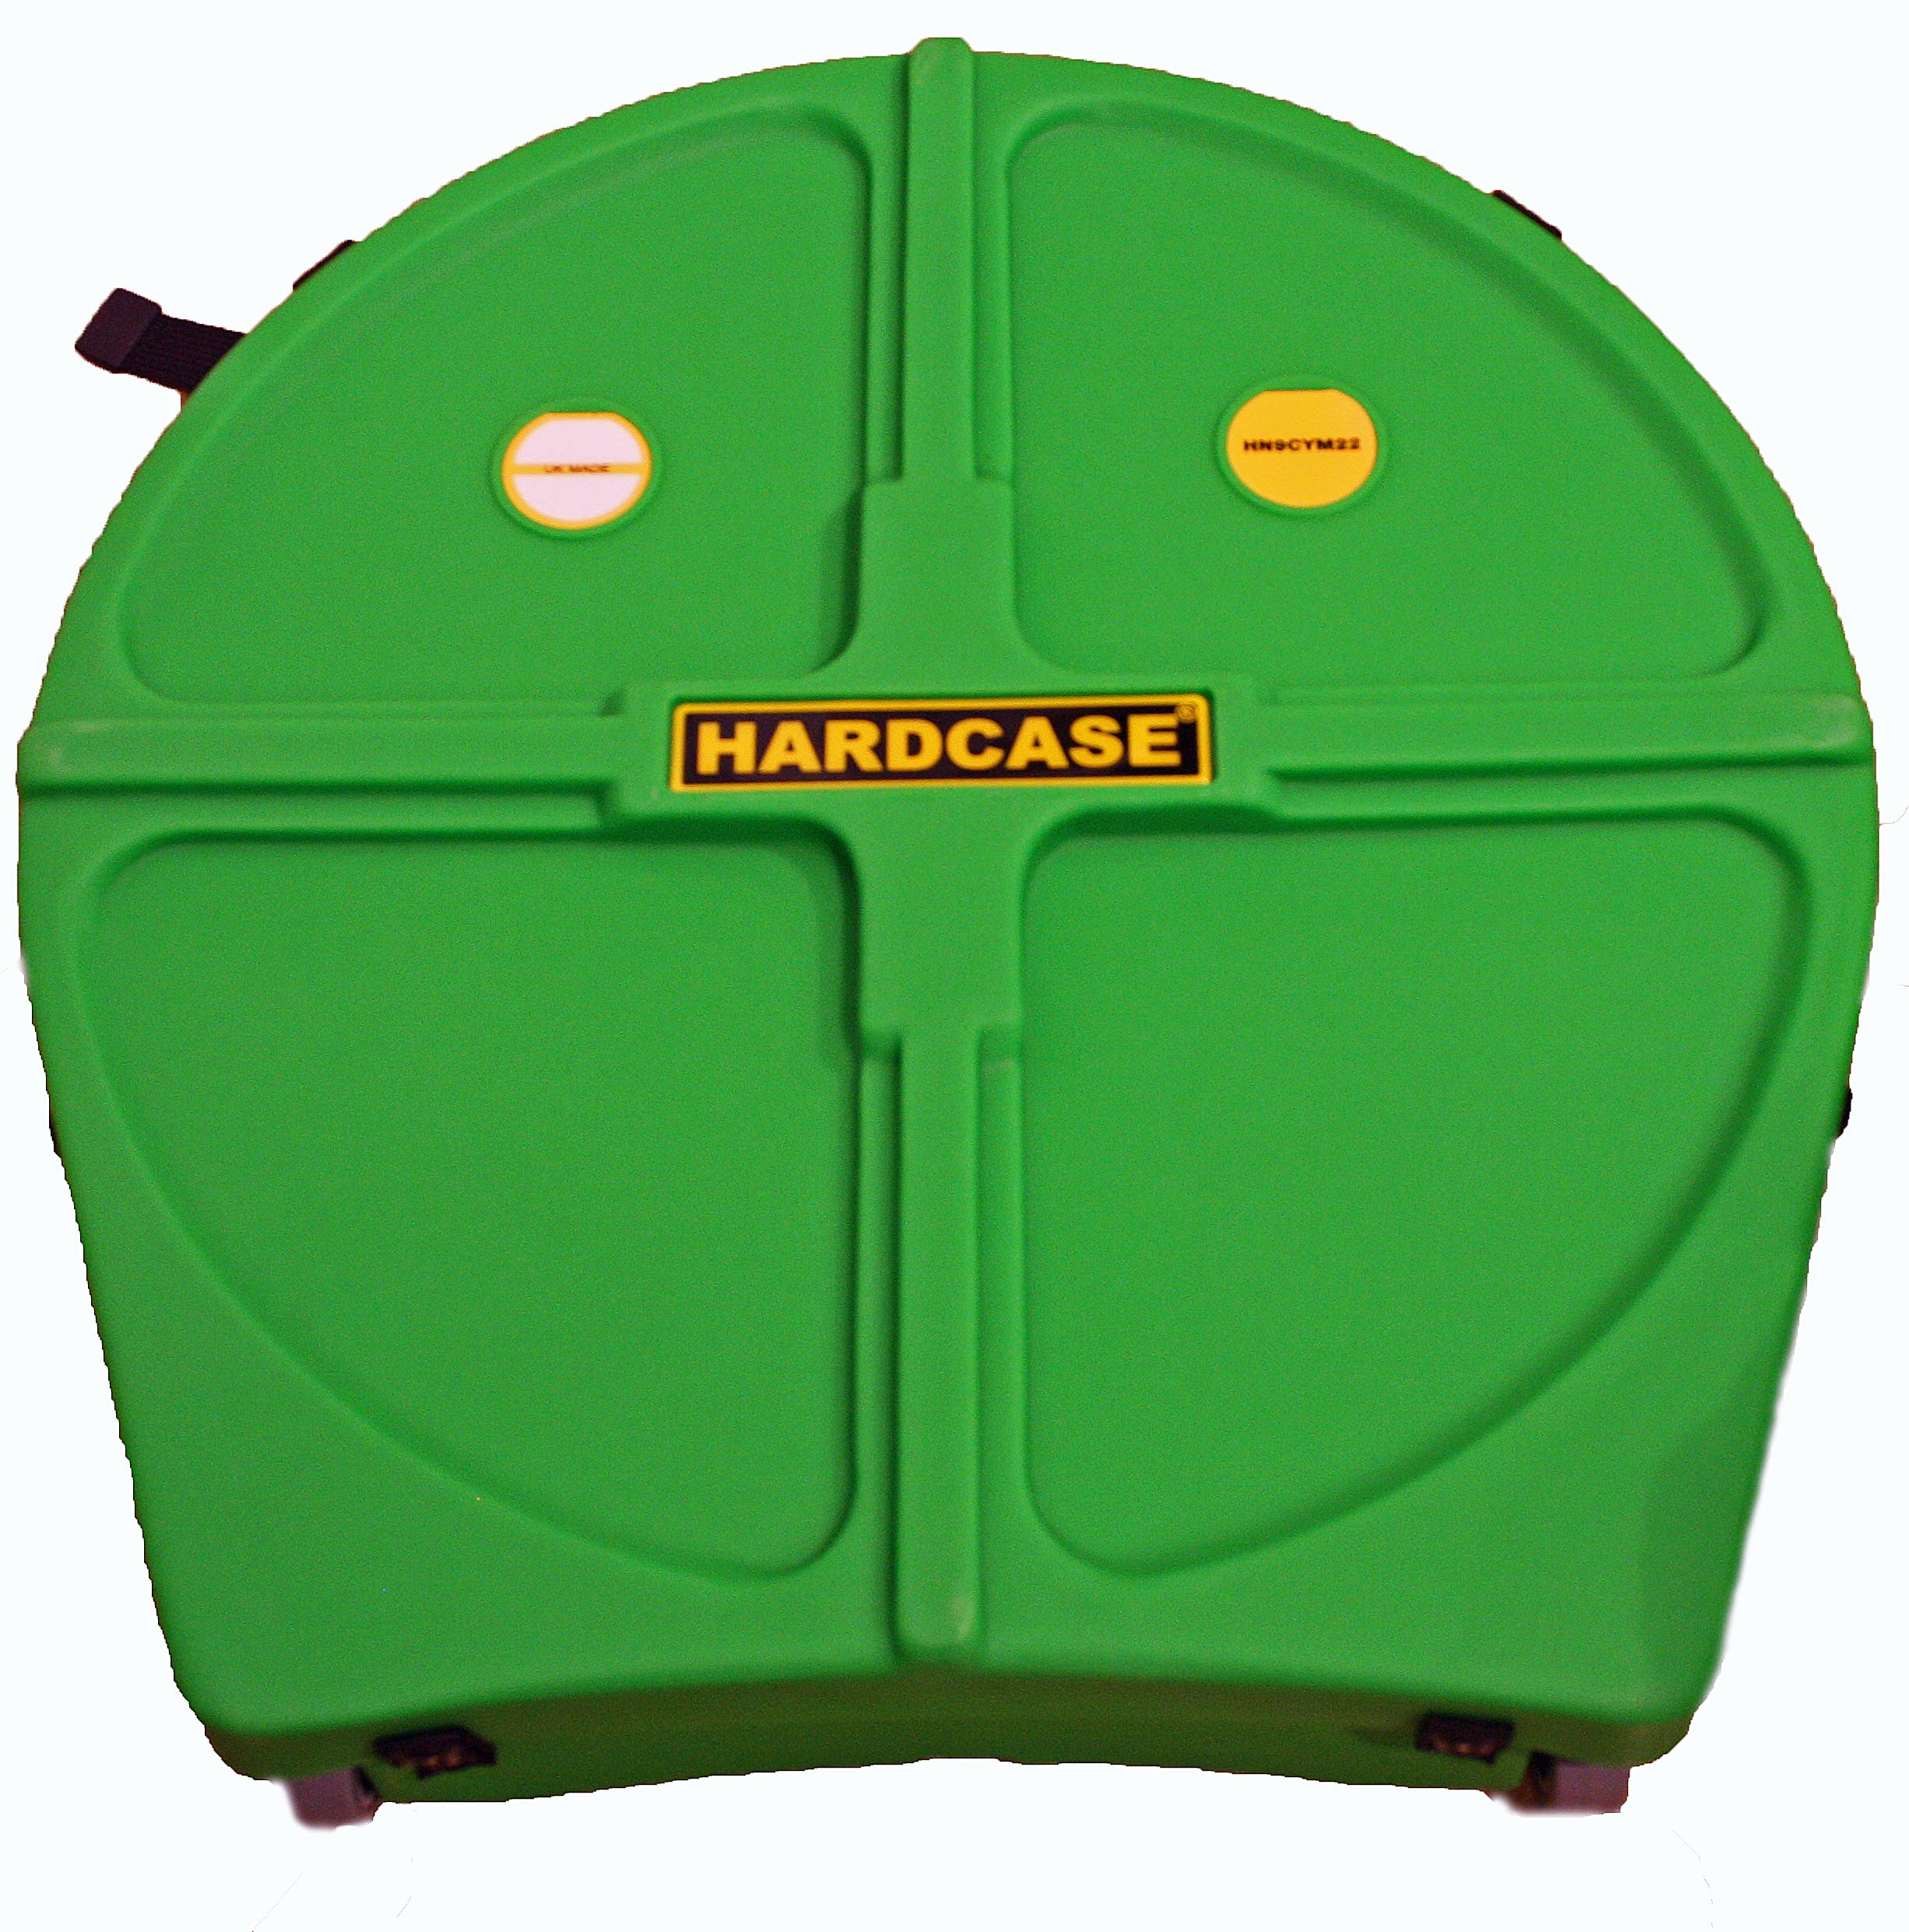 Hardcase HNP9CYM22LG With Wheels Coloured Cymbal Case Light Green